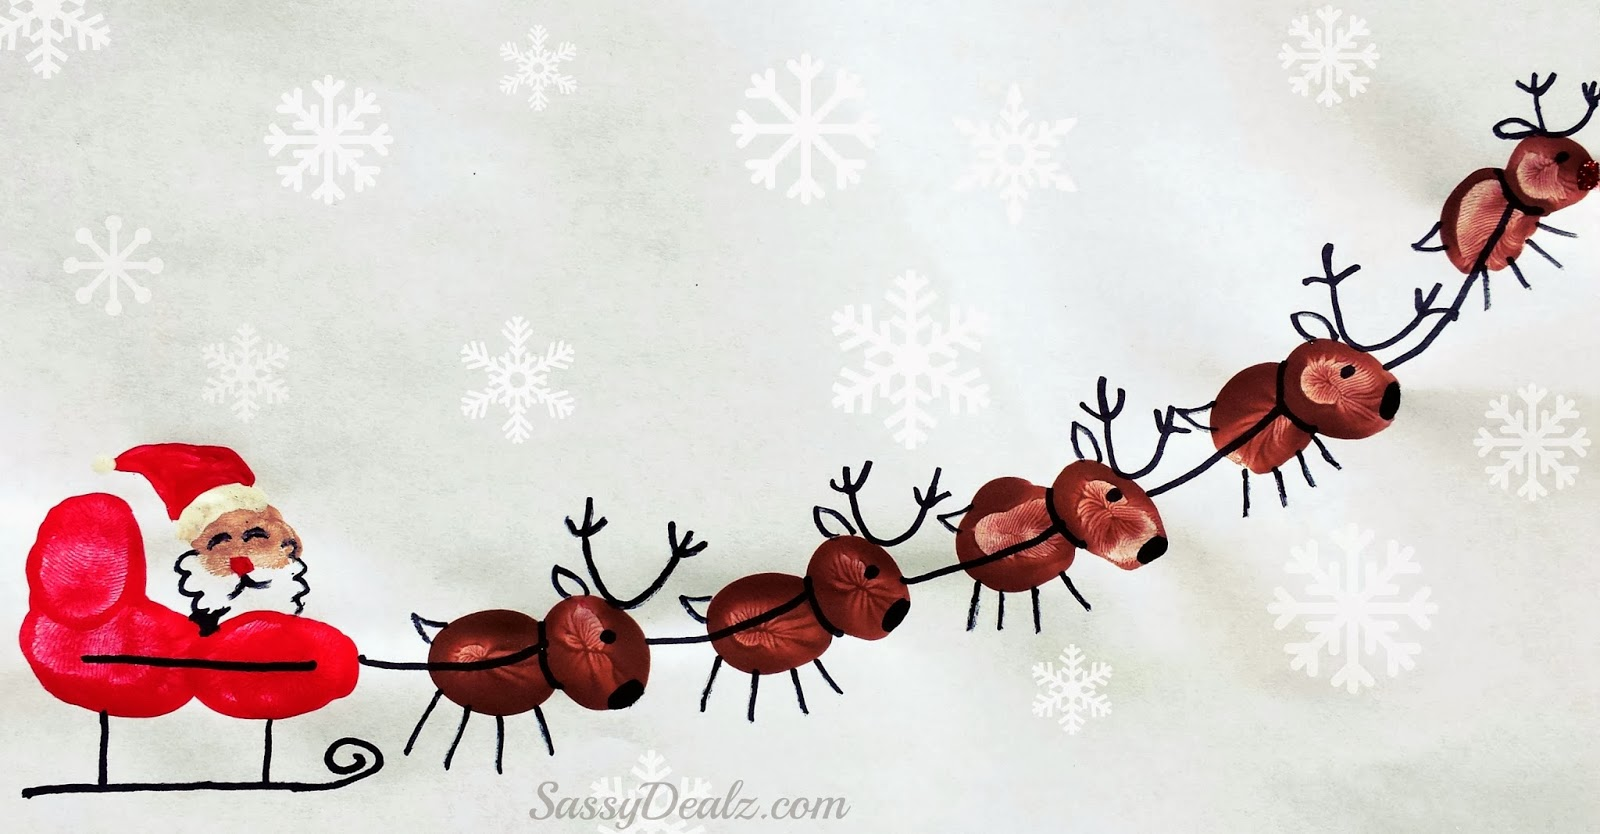 Santa Sleigh Reindeer Fingerprint Crafts